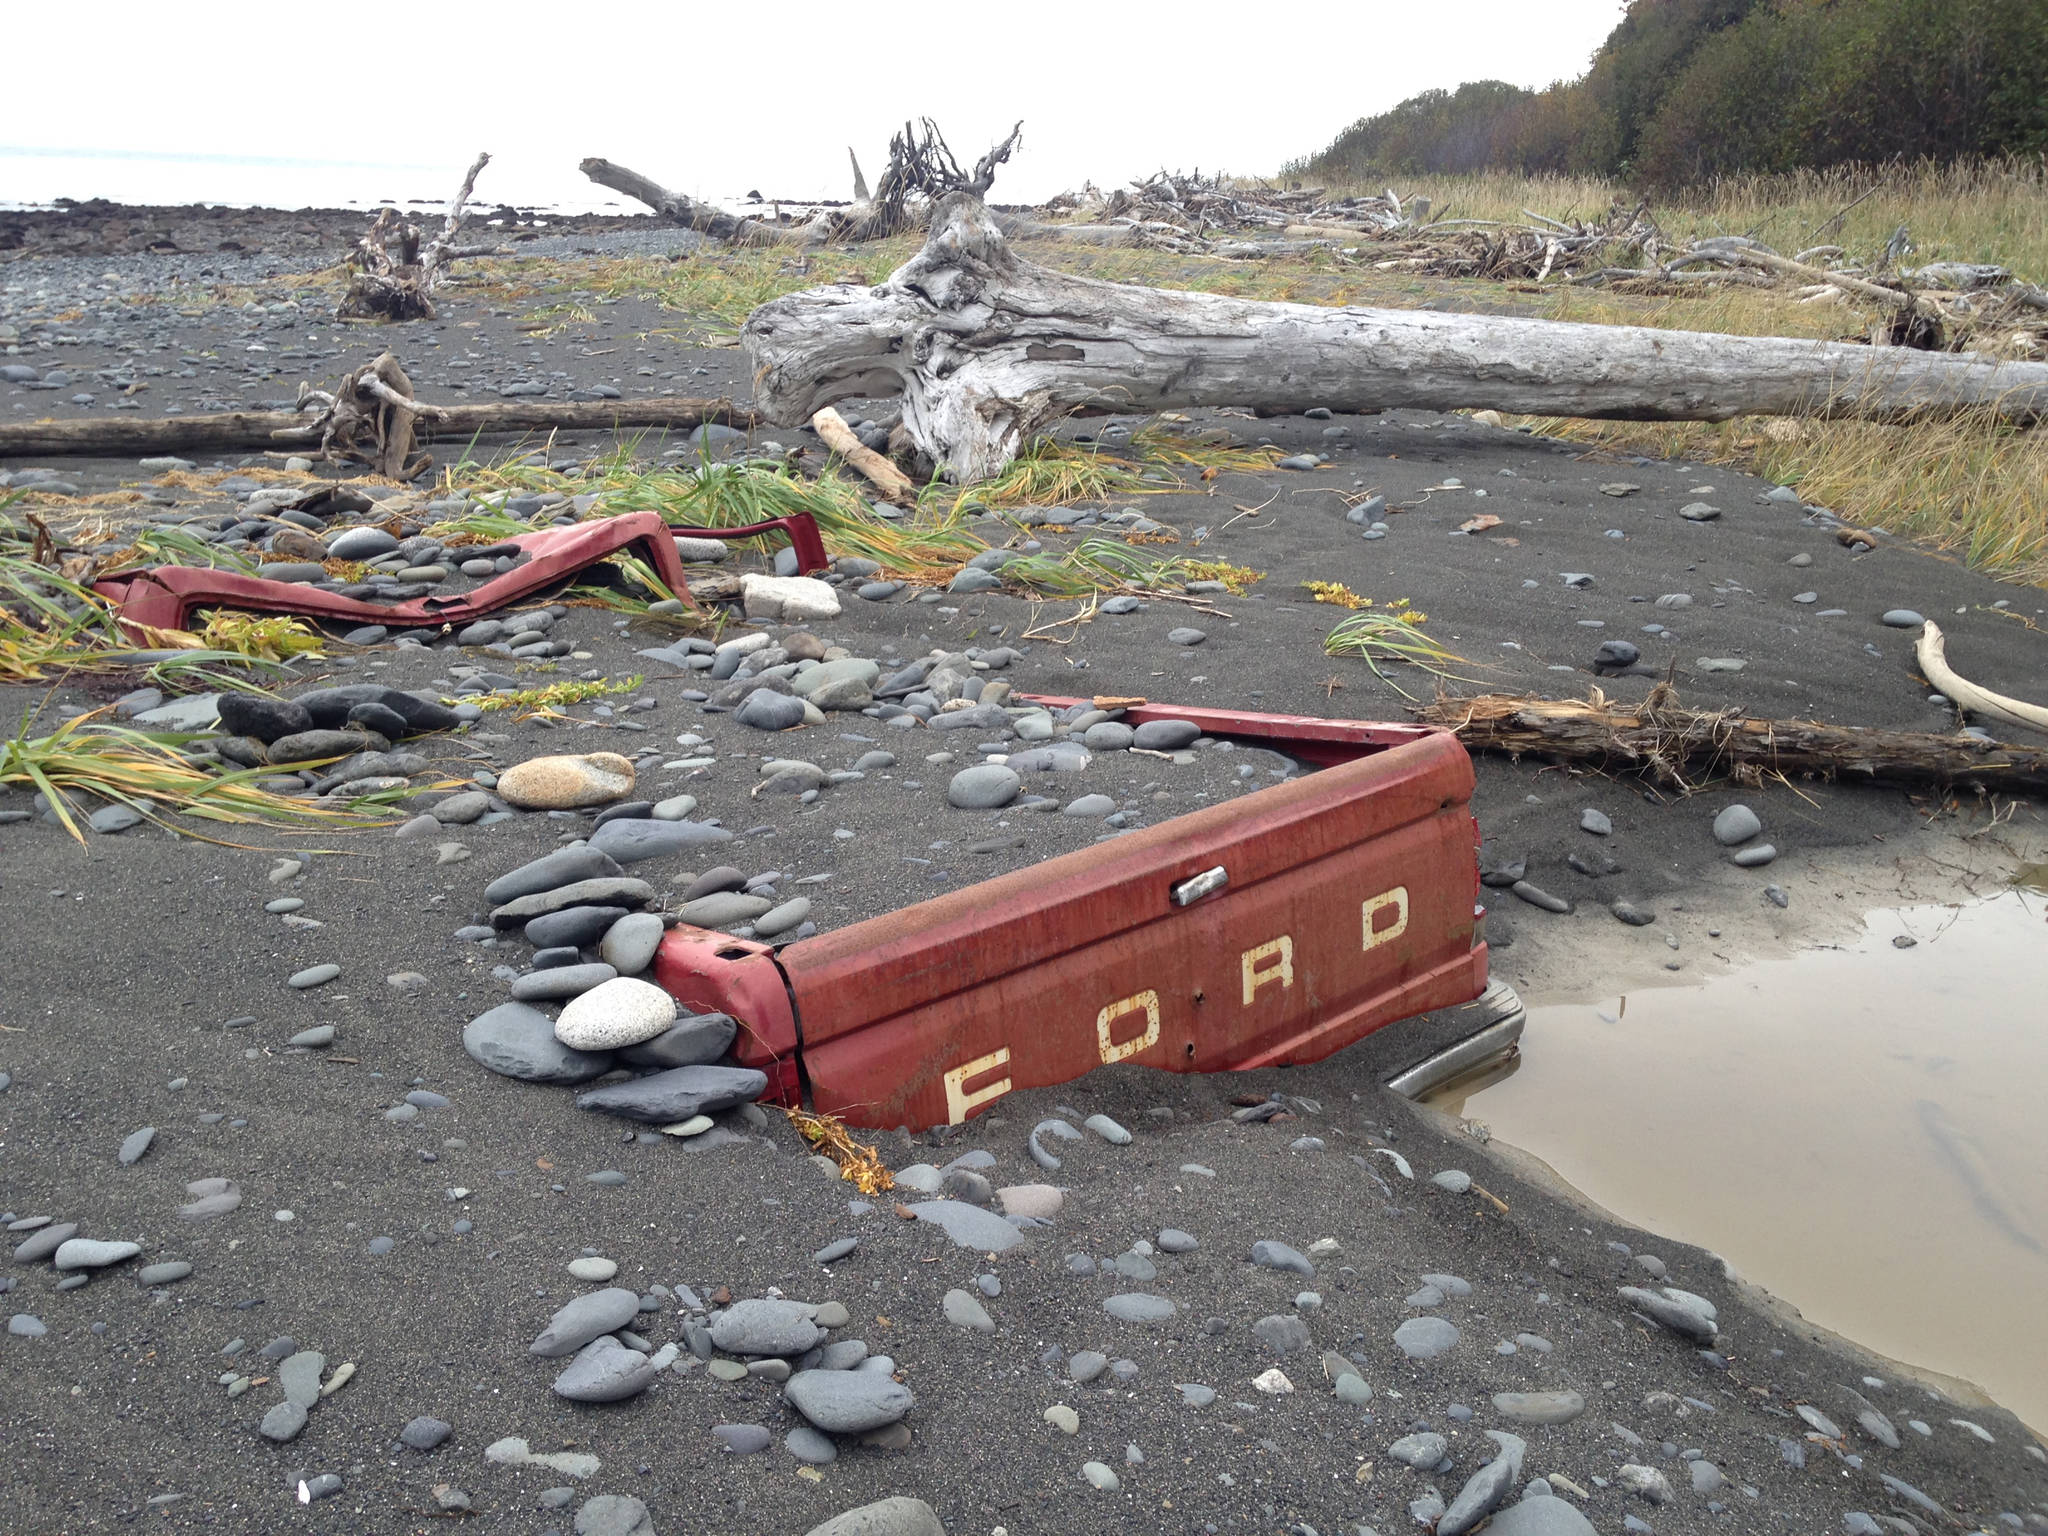 Storm tides have almost totally buried a Ford F-150 pickup truck on the beach south of Diamond Creek in this photo taken on Sunday, Oct. 14, 2018, near Homer, Alaska. The truck was abandoned on the beach in October 2011 and had then been on its tires. (Photo by Michael Armstrong/Homer News)